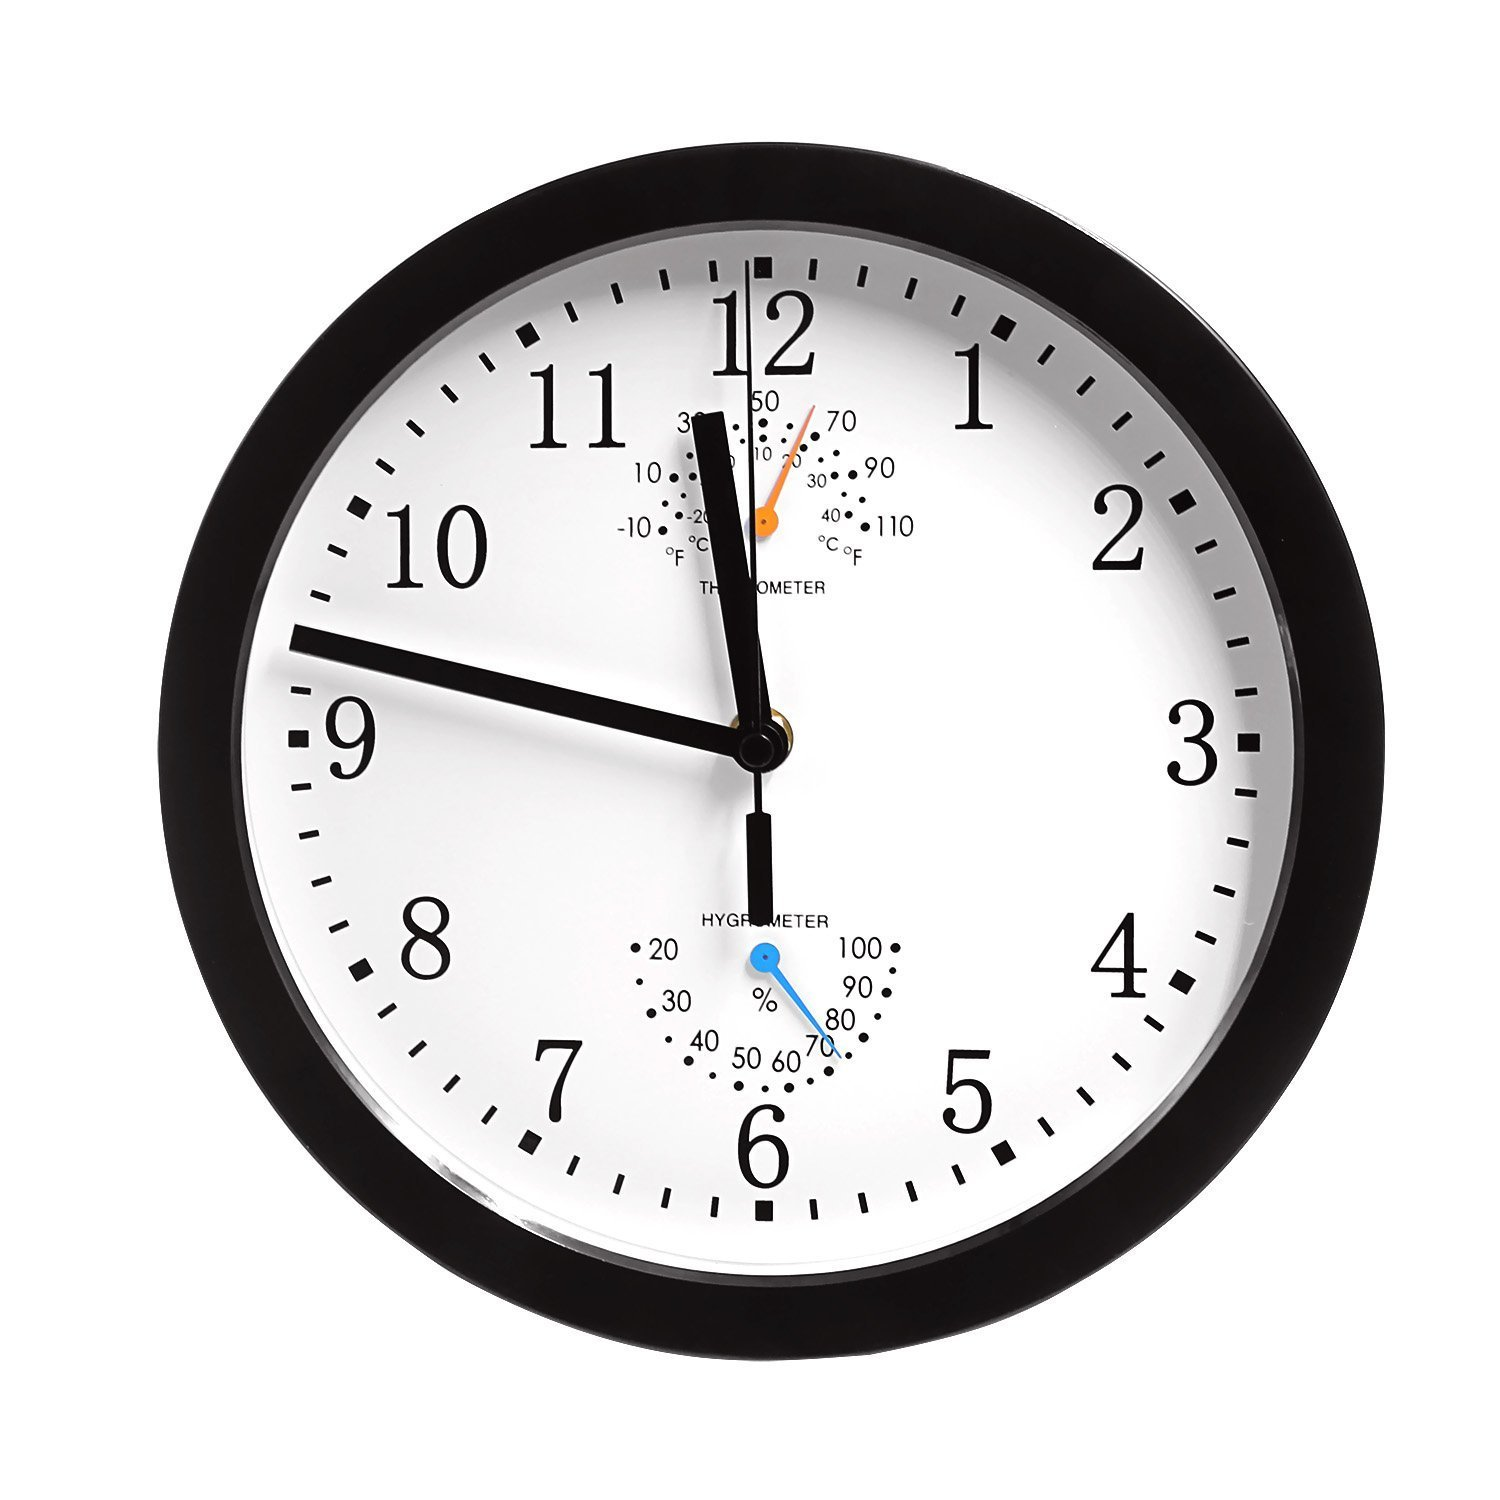 Magho Non-ticking Silent Indoor/Outdoor Wall Clock with Thermometer and Hygrometer for Kitchen/Living Room/Bathroom/Garage etc., Battery Operated, Black Color(Plastic, 10')